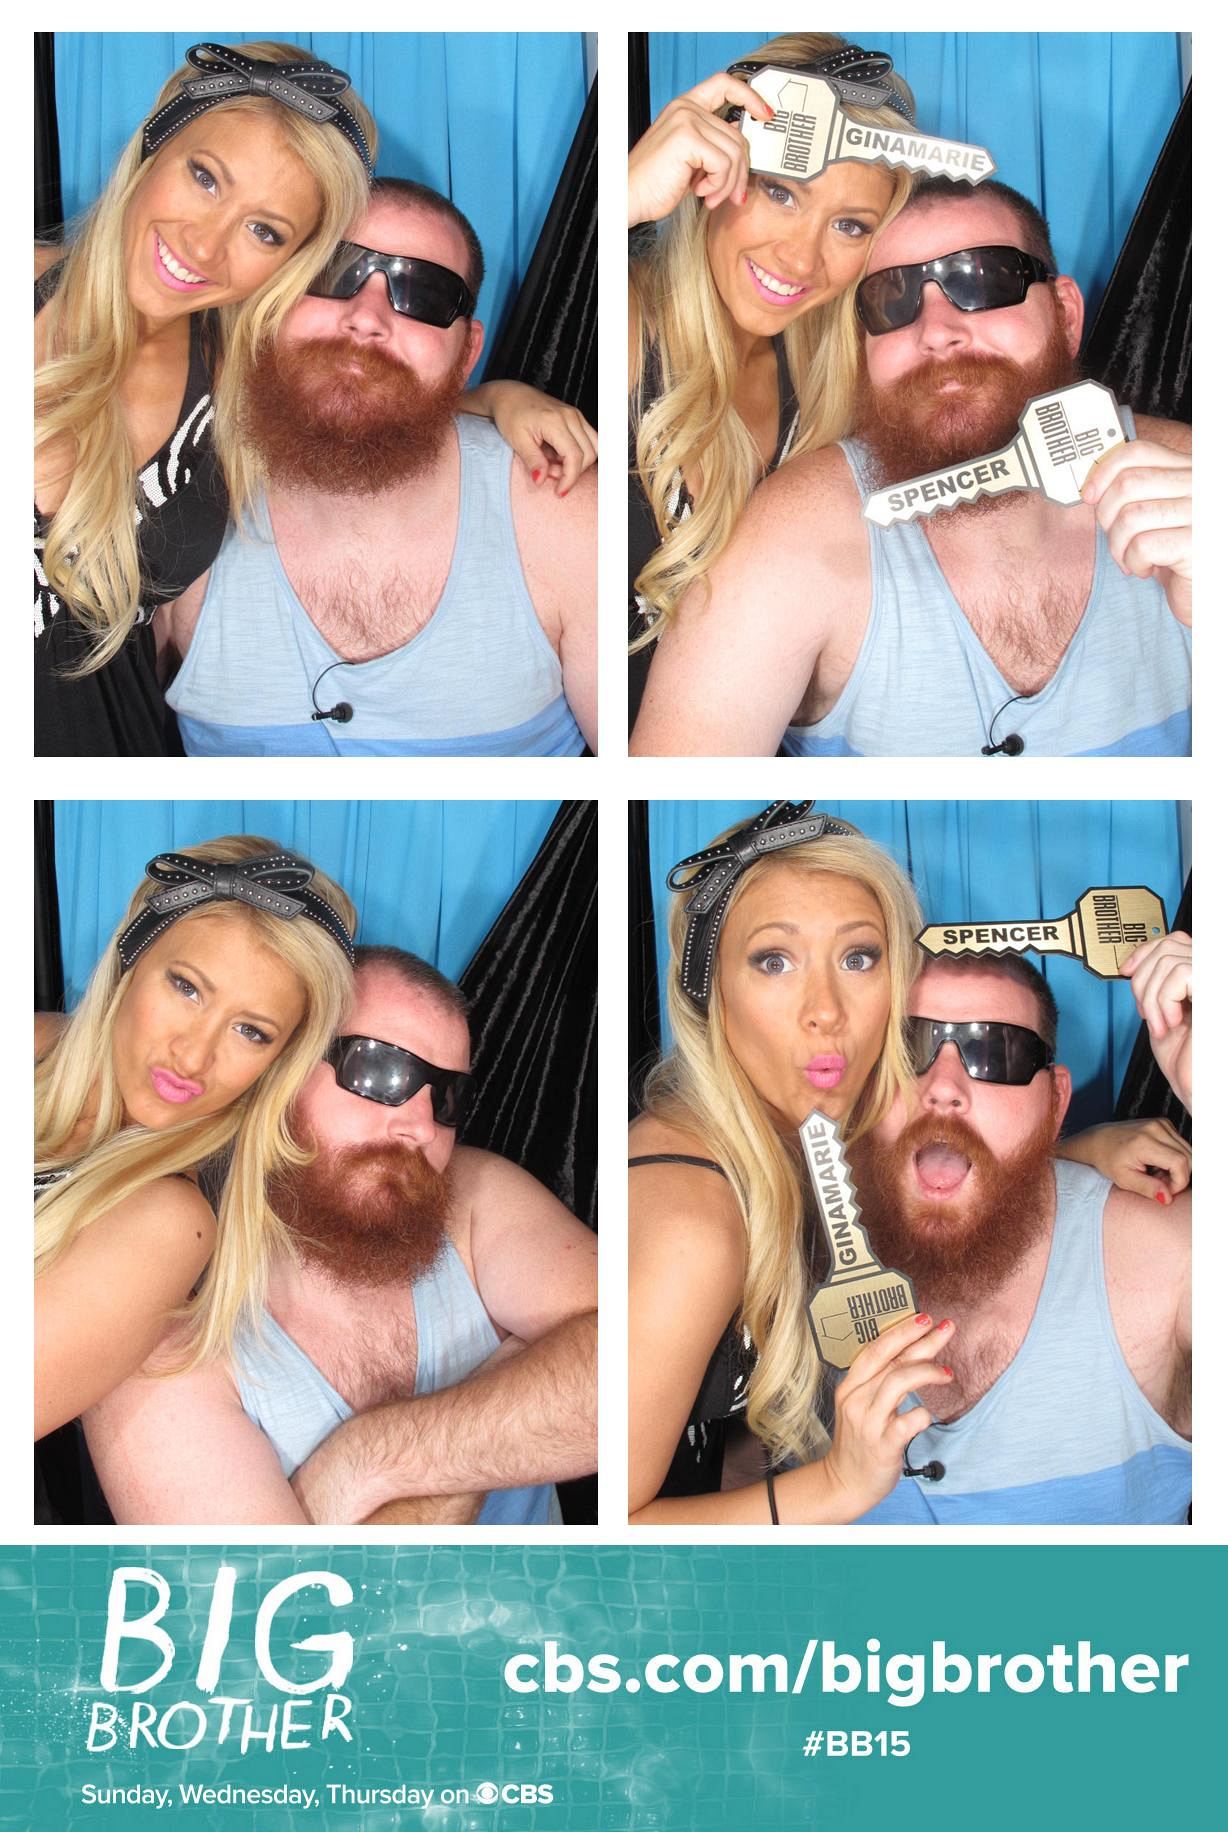 GinaMarie and Spencer